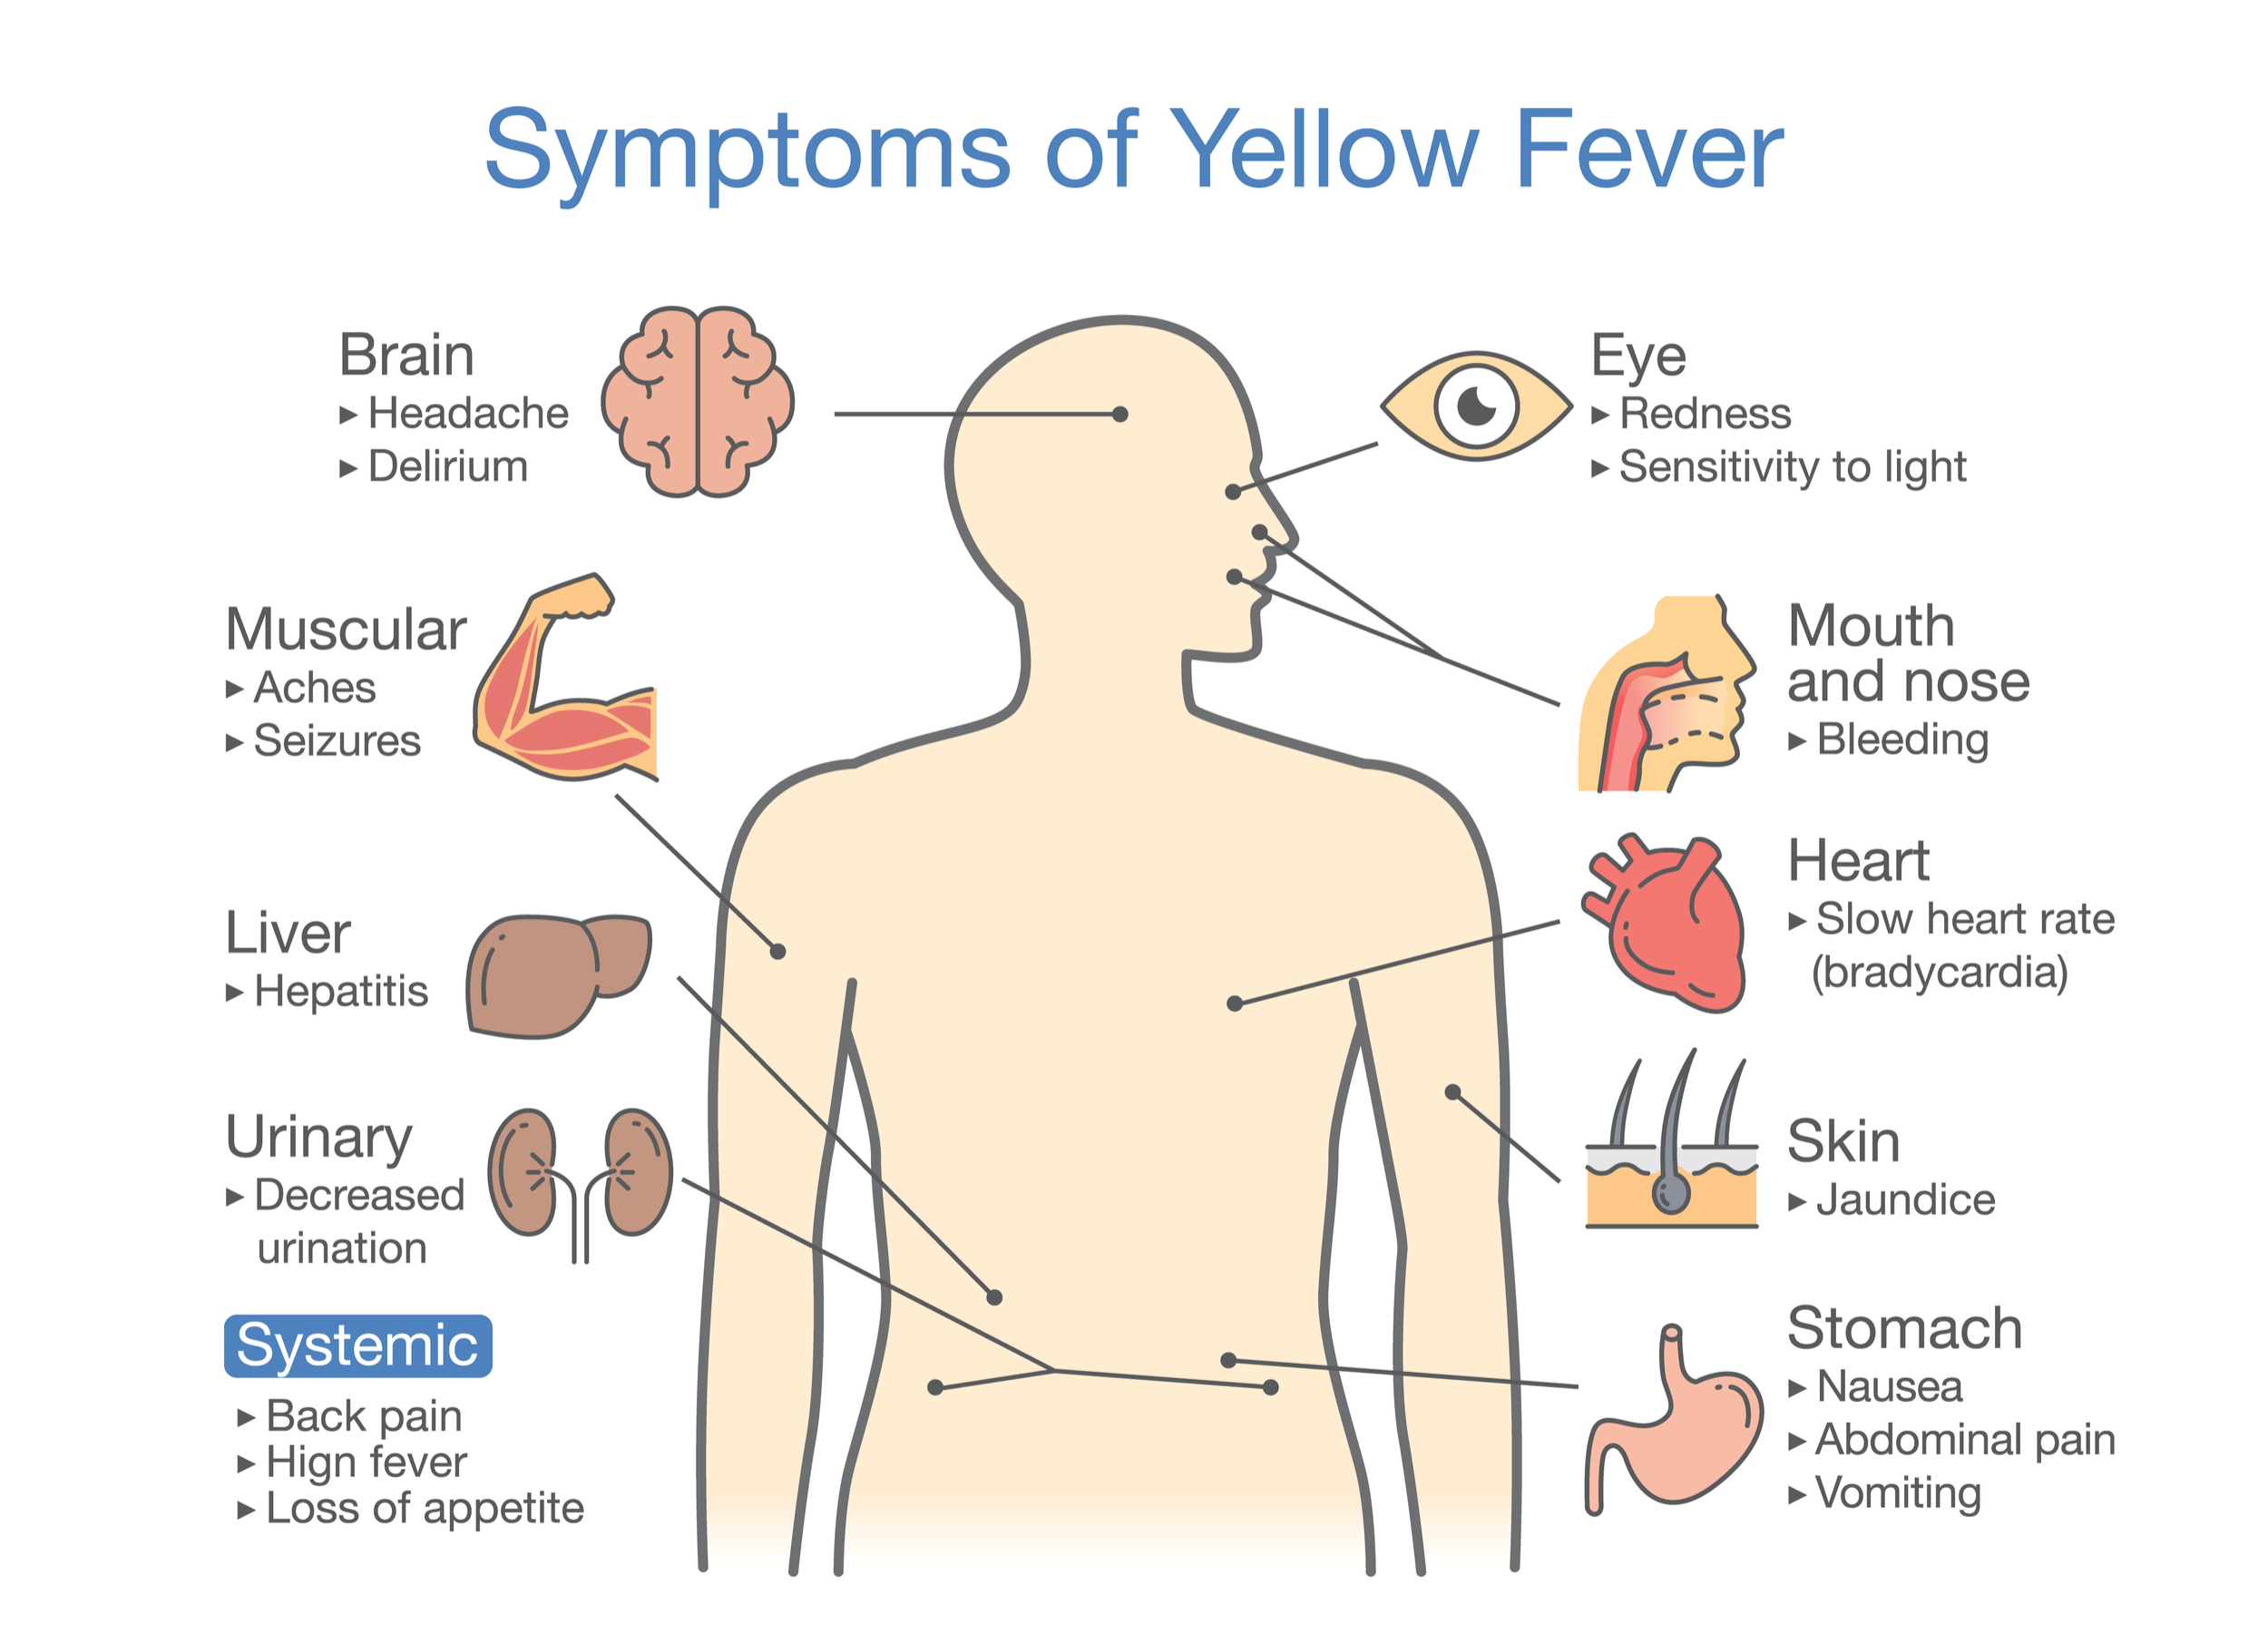 yellow fever images infectious diseases pictures for presentations